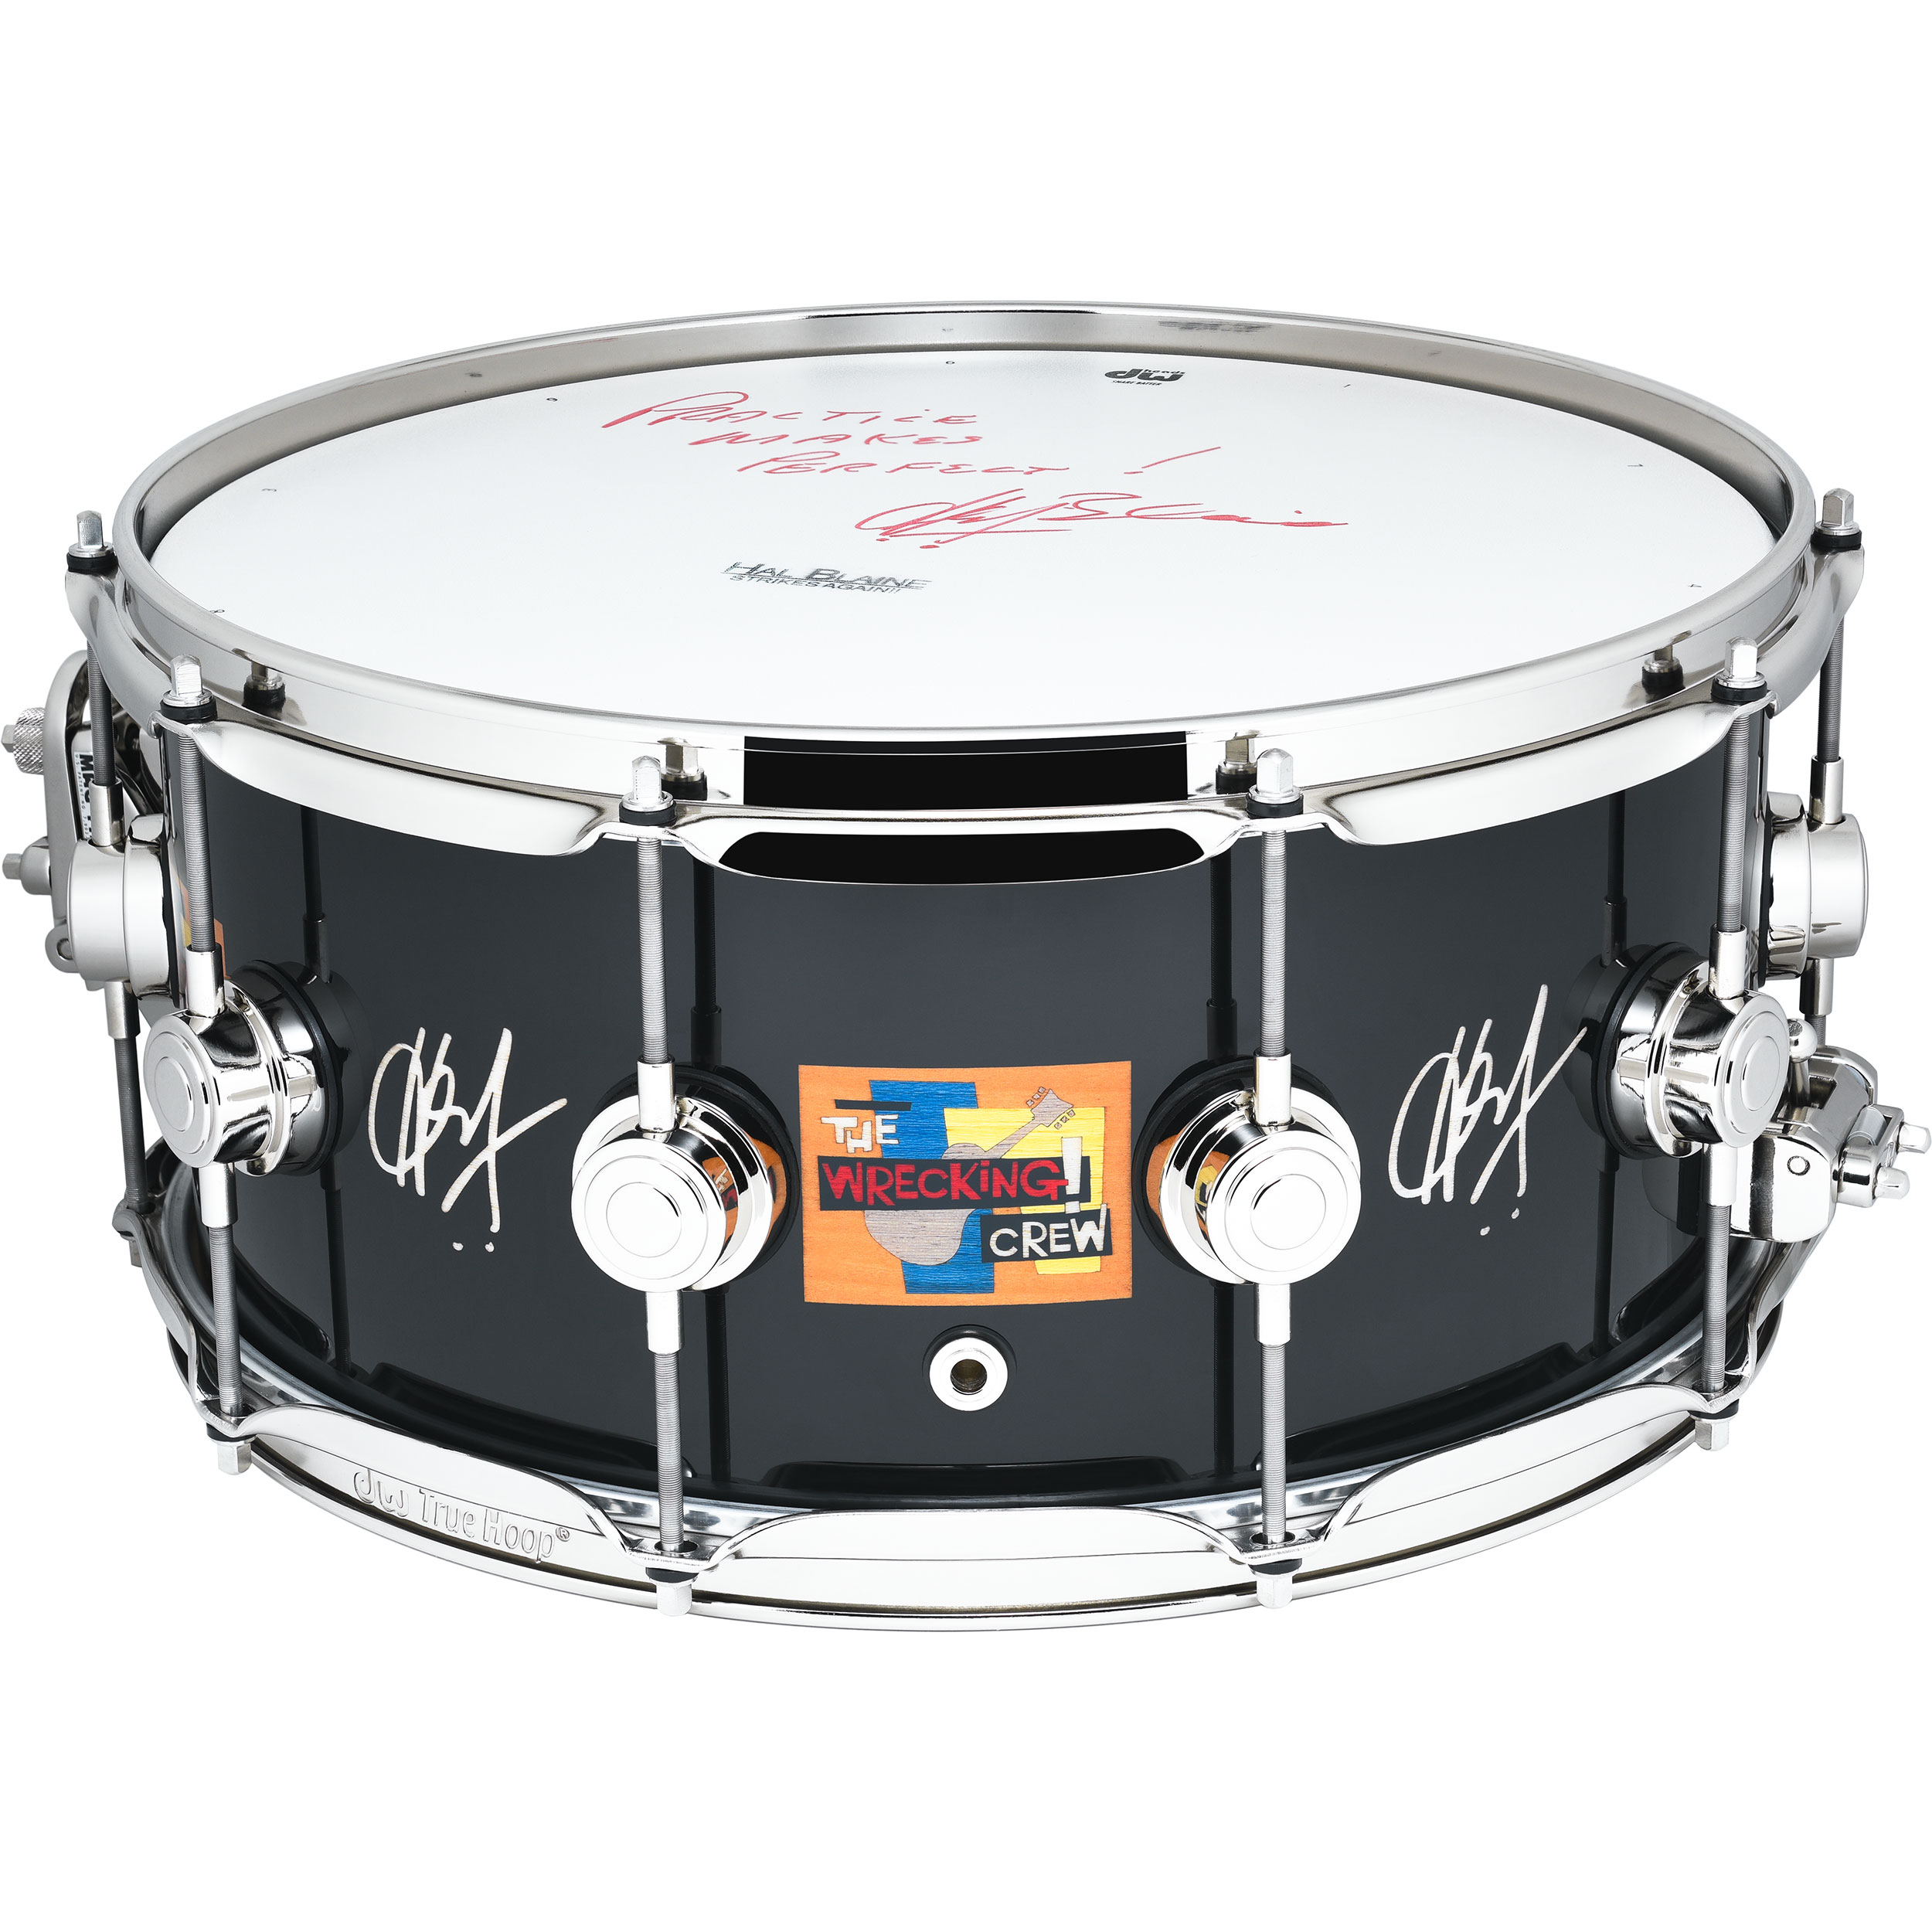 """DW 6.5"""" x 14"""" Hal Blaine Wrecking Crew Icon Snare Drum with Nickel Hardware"""